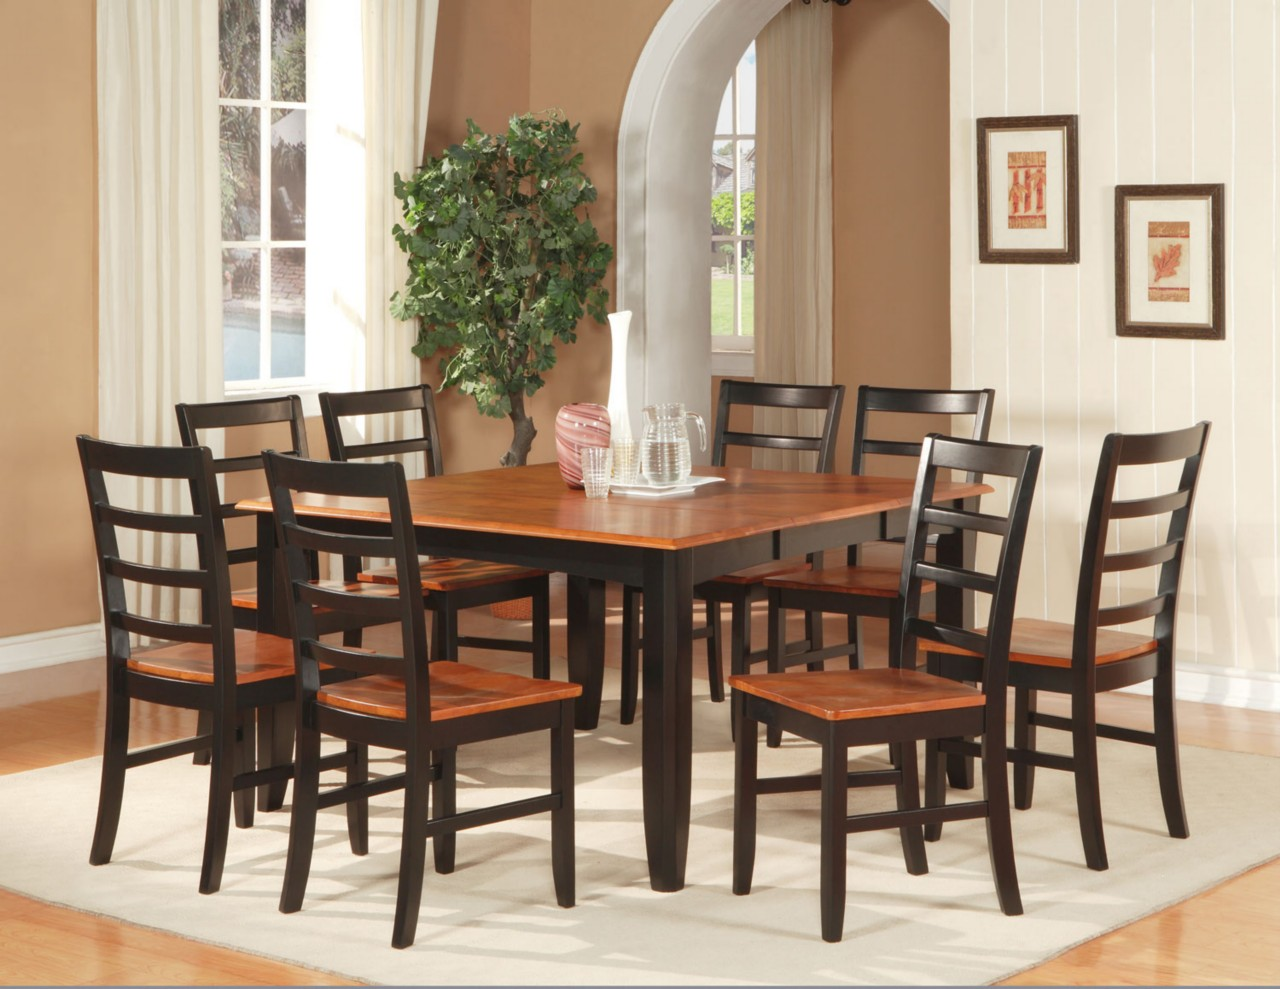 dinette dining room set table with 6 wood seat chairs black cherry